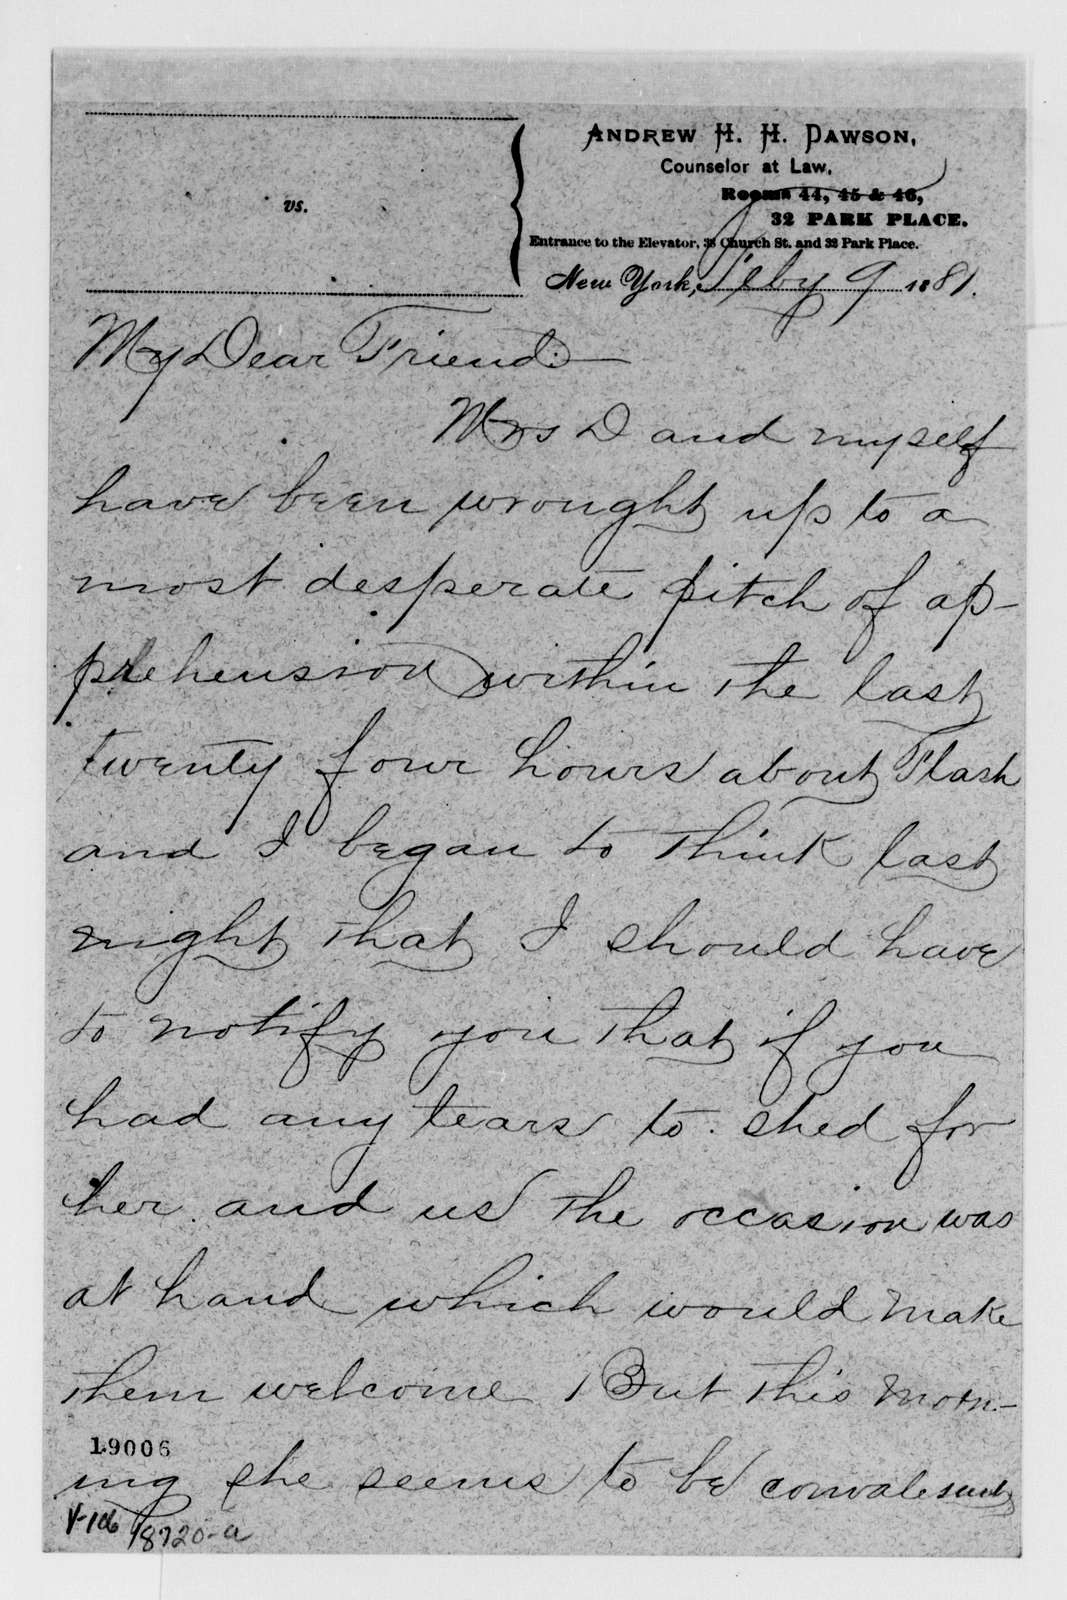 Alexander Hamilton Stephens Papers: General Correspondence, 1784-1886; 1880, Dec. 13-1881, July 27